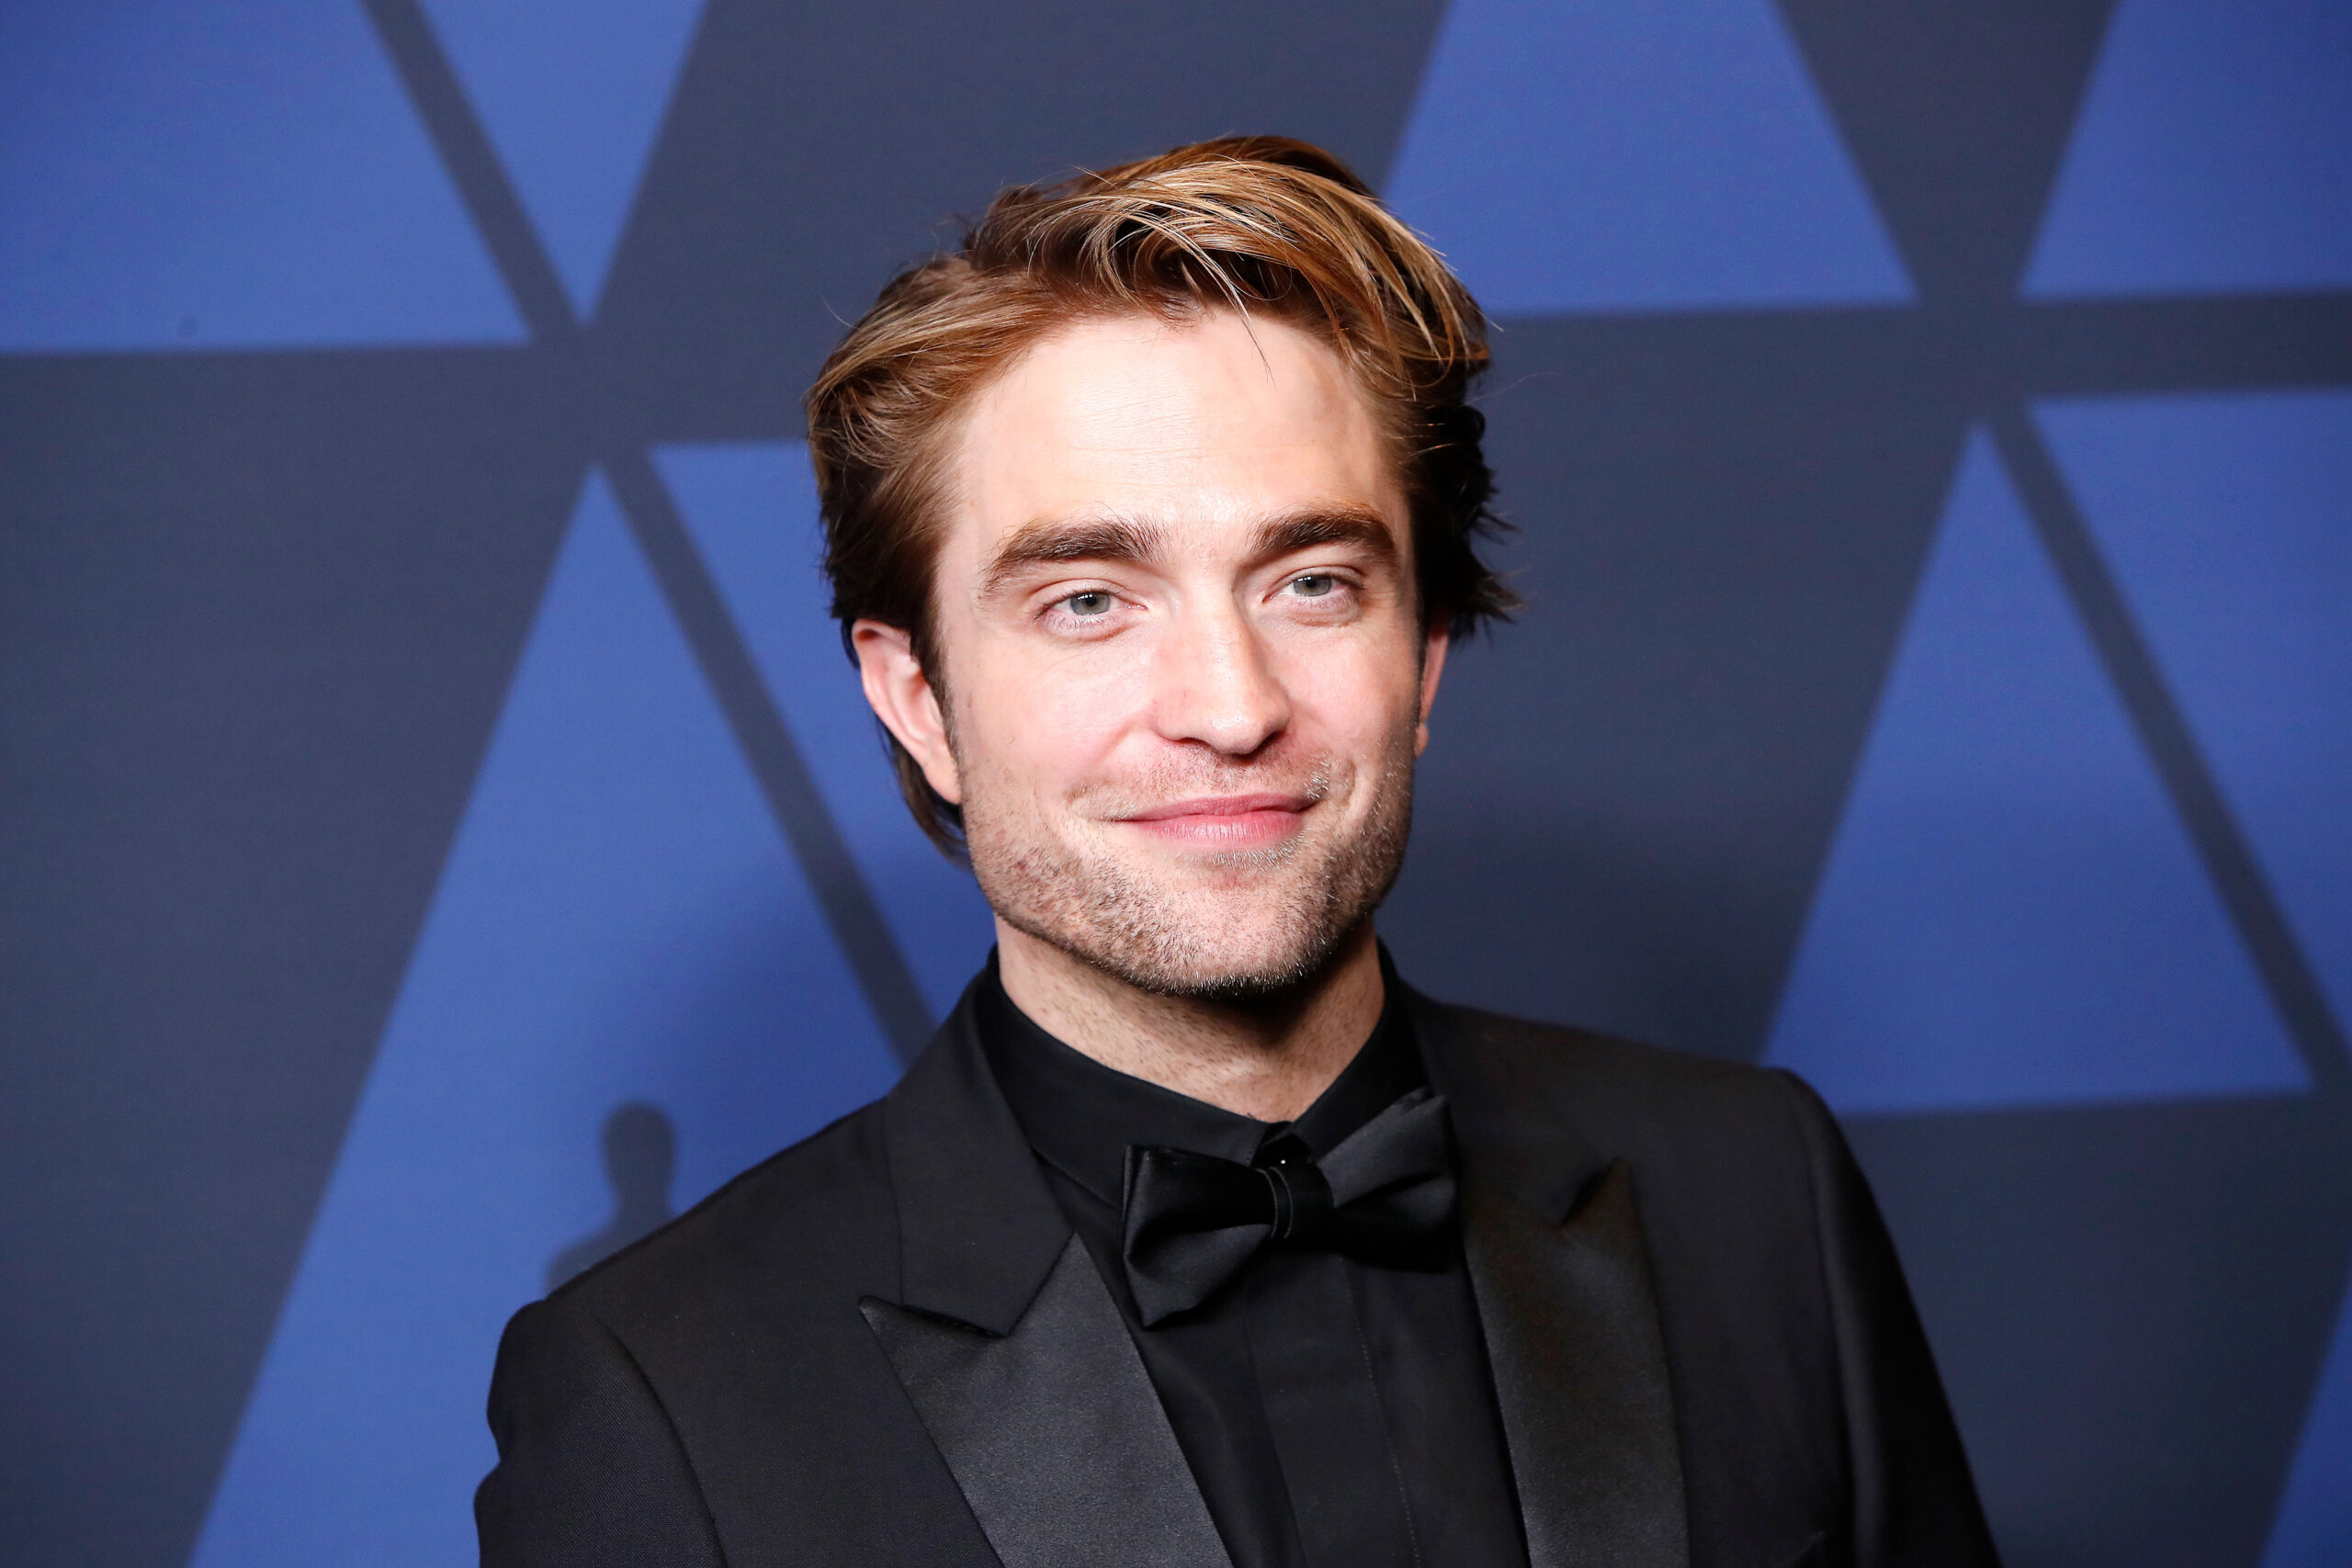 Batman Filming Halted - Robert Pattinson Has Covid-19